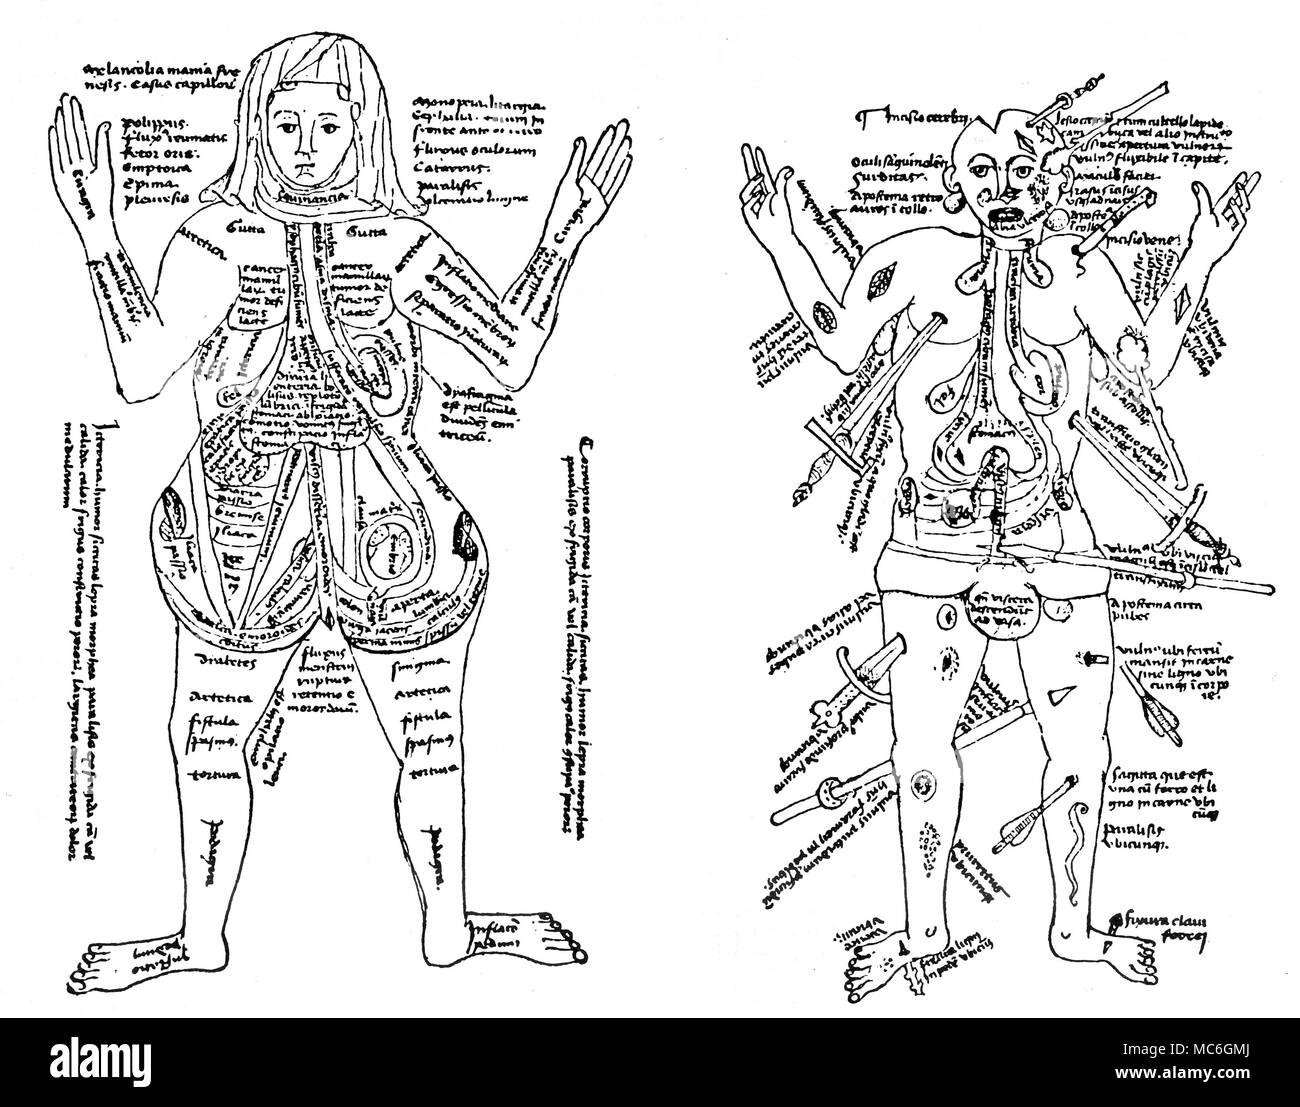 MEDICAL  - 'PREGNANCY' IMAGE - WOUND-MAN IMAGE [Left]  Mediaeval drawing (early 15th century) displaying the innards of the pregnant woman (Bild der Schwangeren).   The Latin legends include the names of illnesses to which the pregnant woman was believed to be susceptible.[Right] Mediaeval drawing (early 15th century) displaying the standard 'Wounded Man' image (the Wundenmann) - this marks out the common types of wounds received by men in battle. Both images are from 'Eine Pariser 'Ketham' Handshfit aus der zeit Konig Karls VI (1380-1422)' in Archiv fur Geschichte der Medizin, Band 2, 1909. - Stock Image